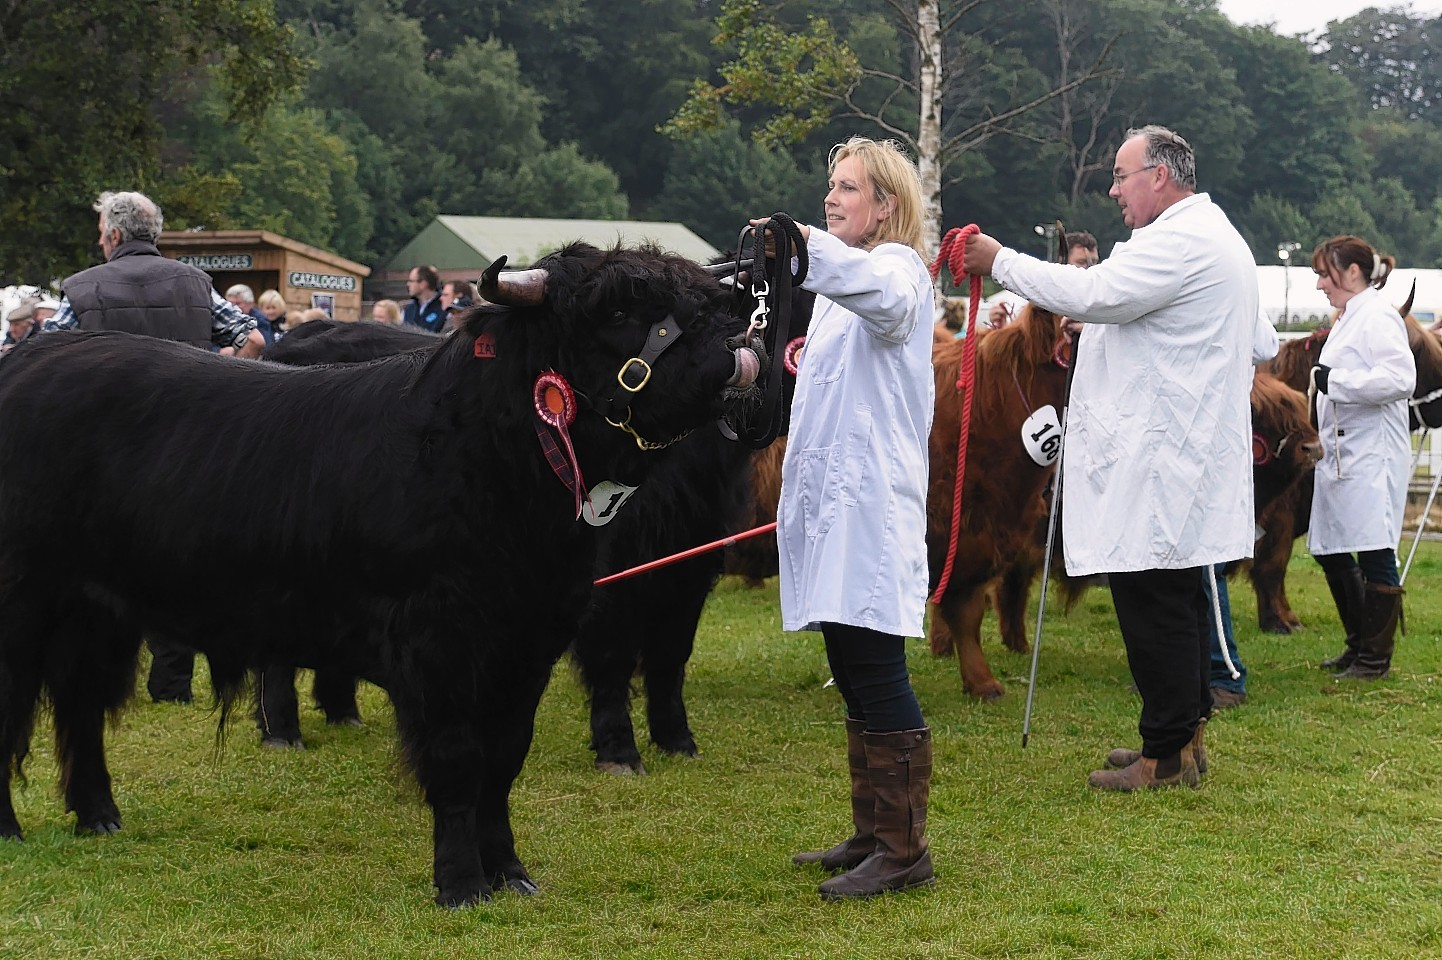 Judging at the show